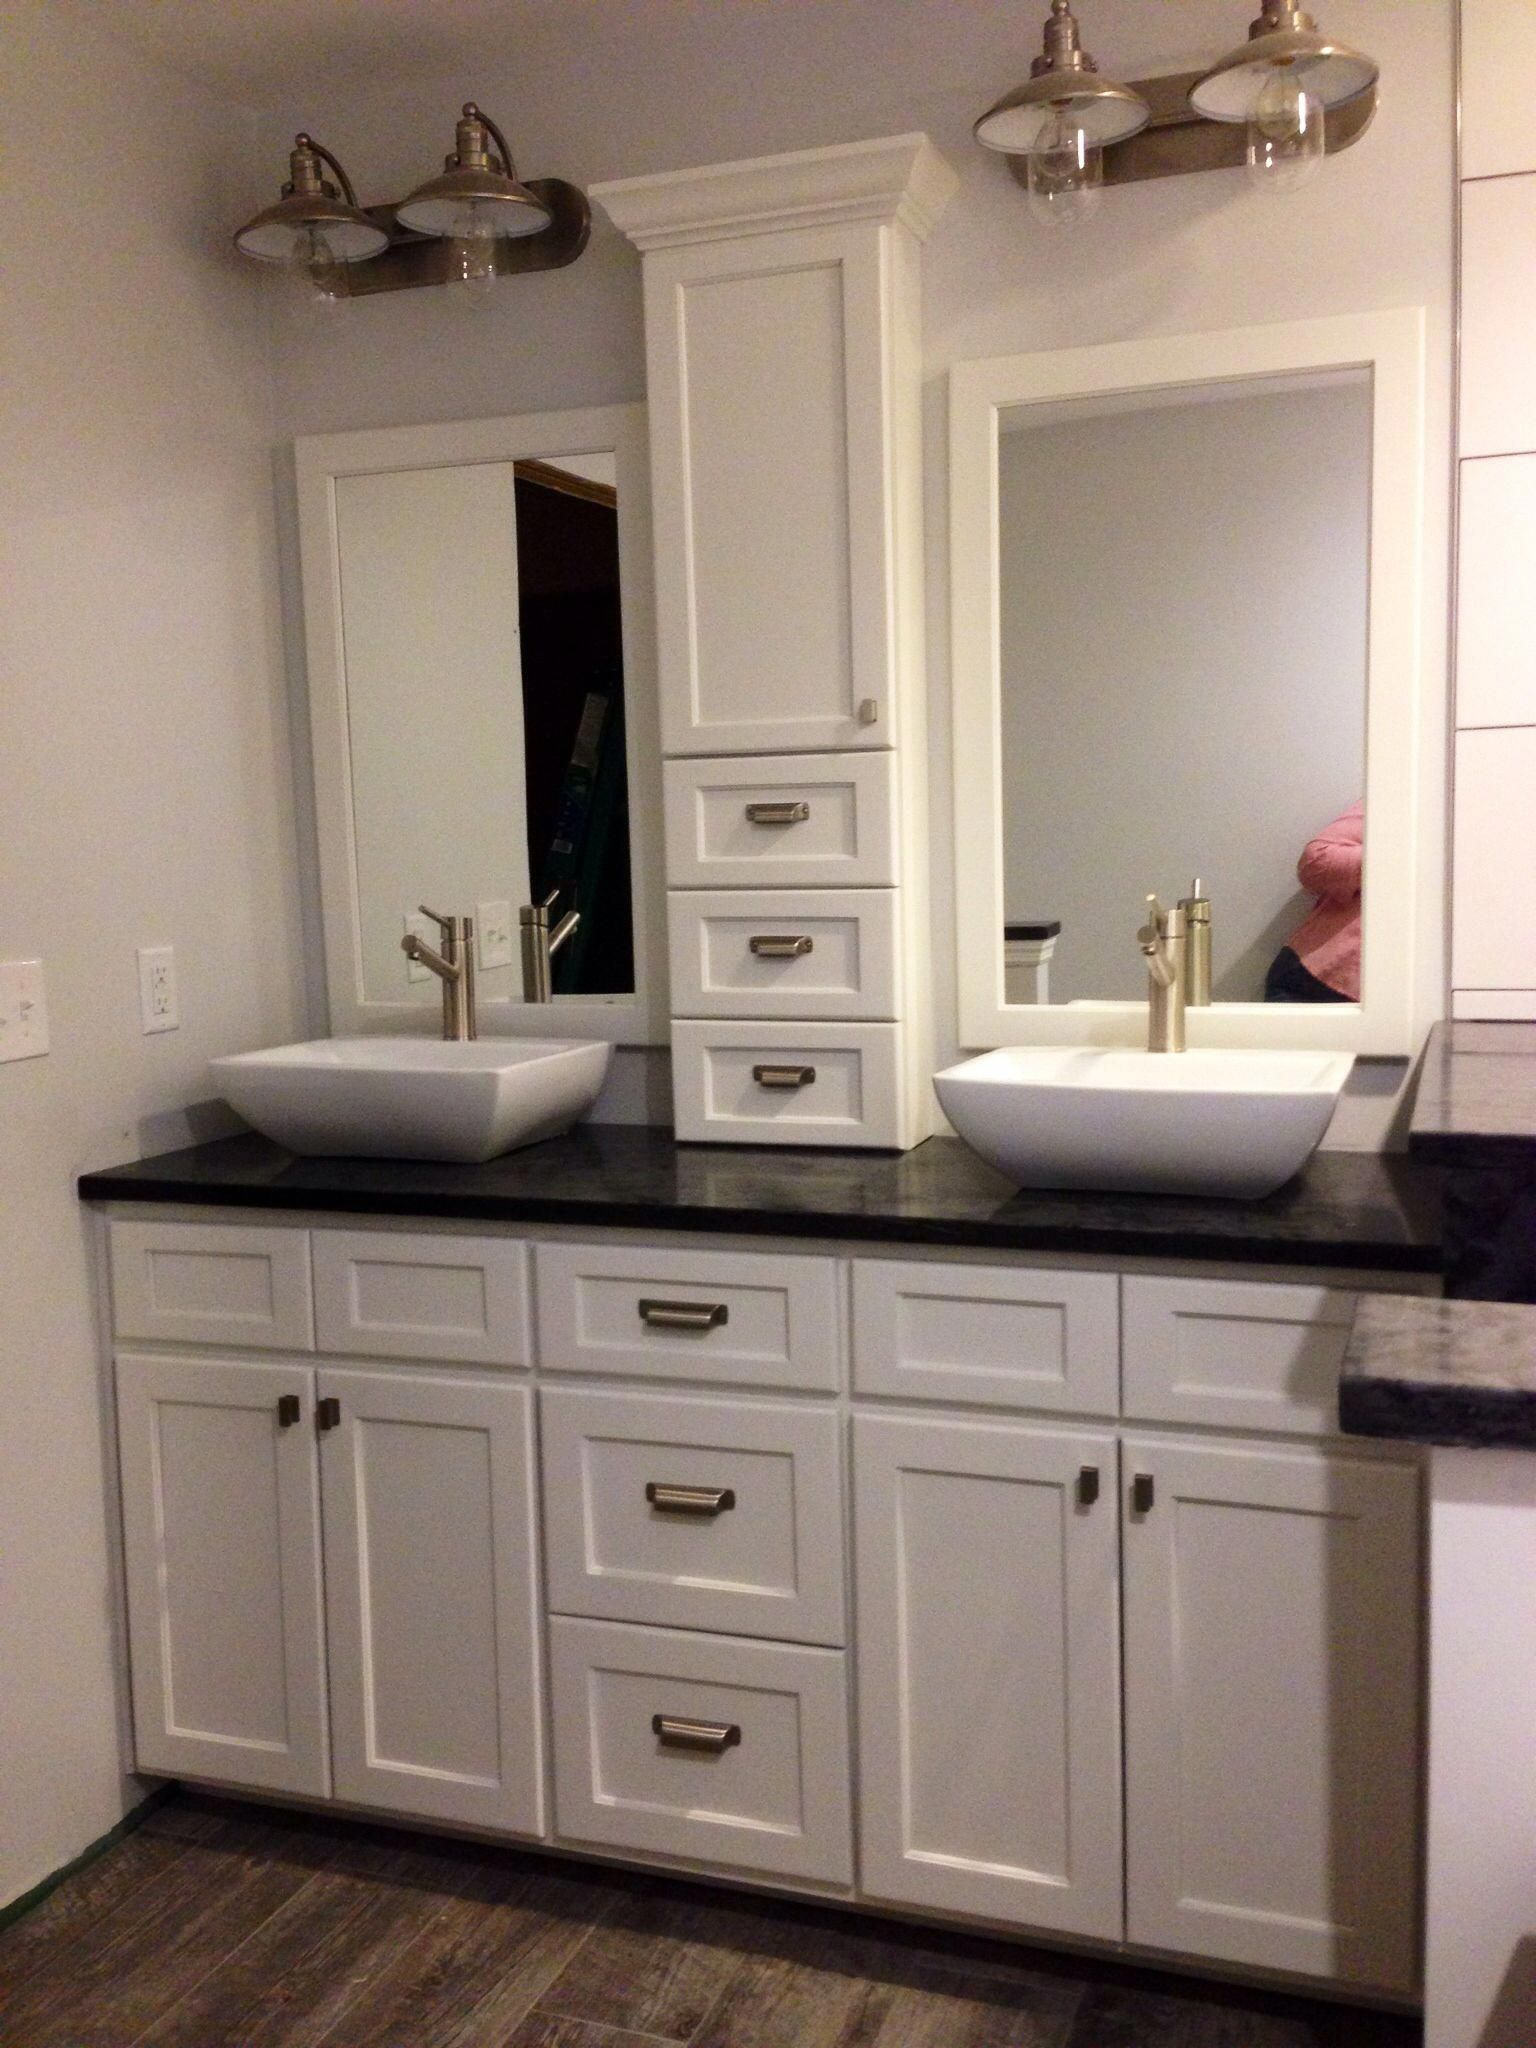 Double Sink Bathroom Ideas